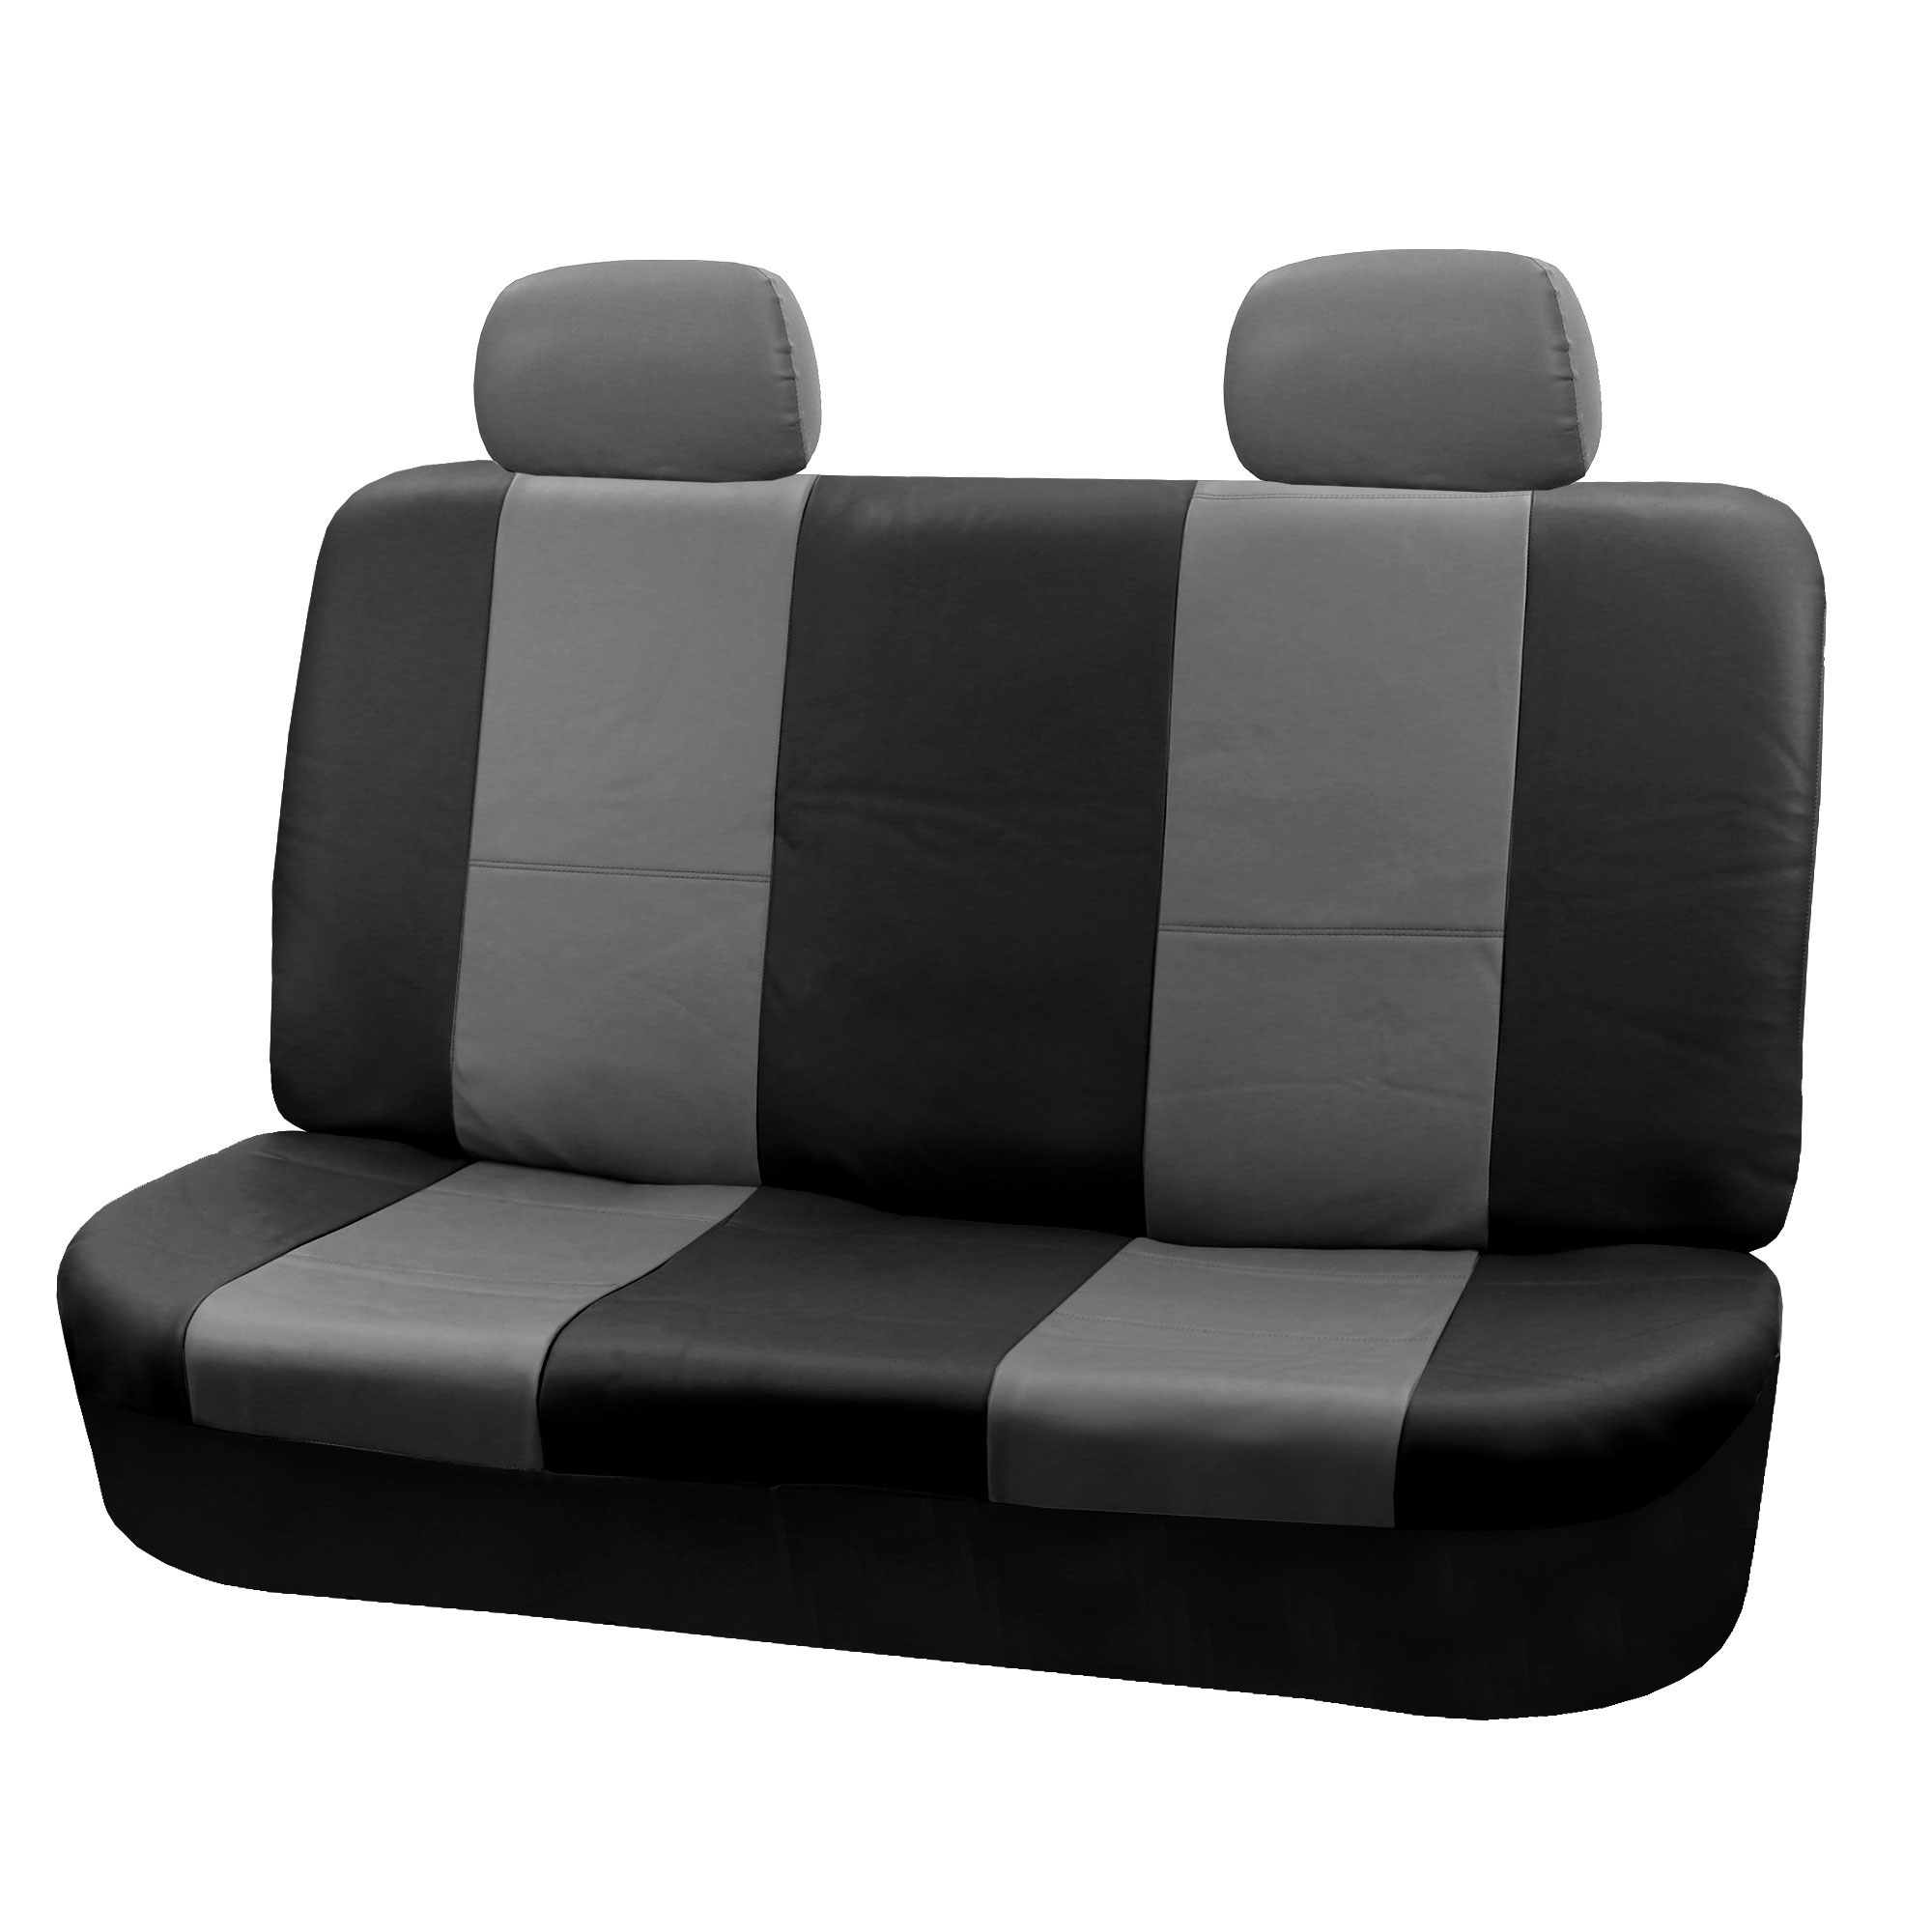 pu leather bucket seat full set covers for seats with headrests ebay. Black Bedroom Furniture Sets. Home Design Ideas